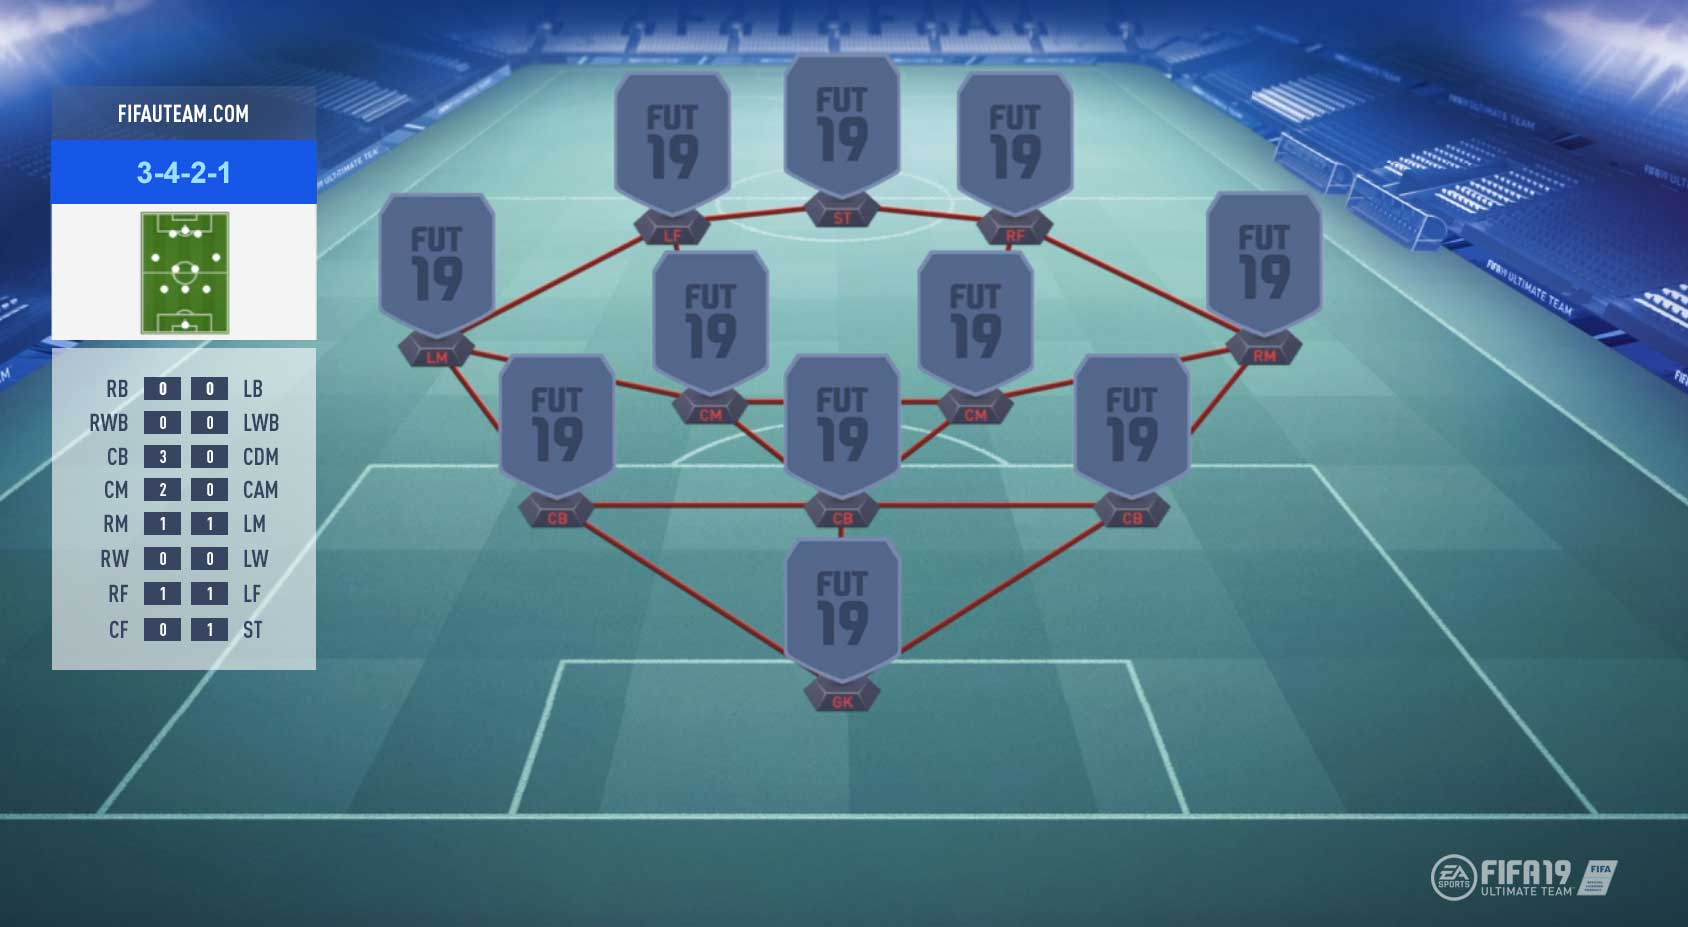 FIFA 19 Formations Guide - 3-4-2-1